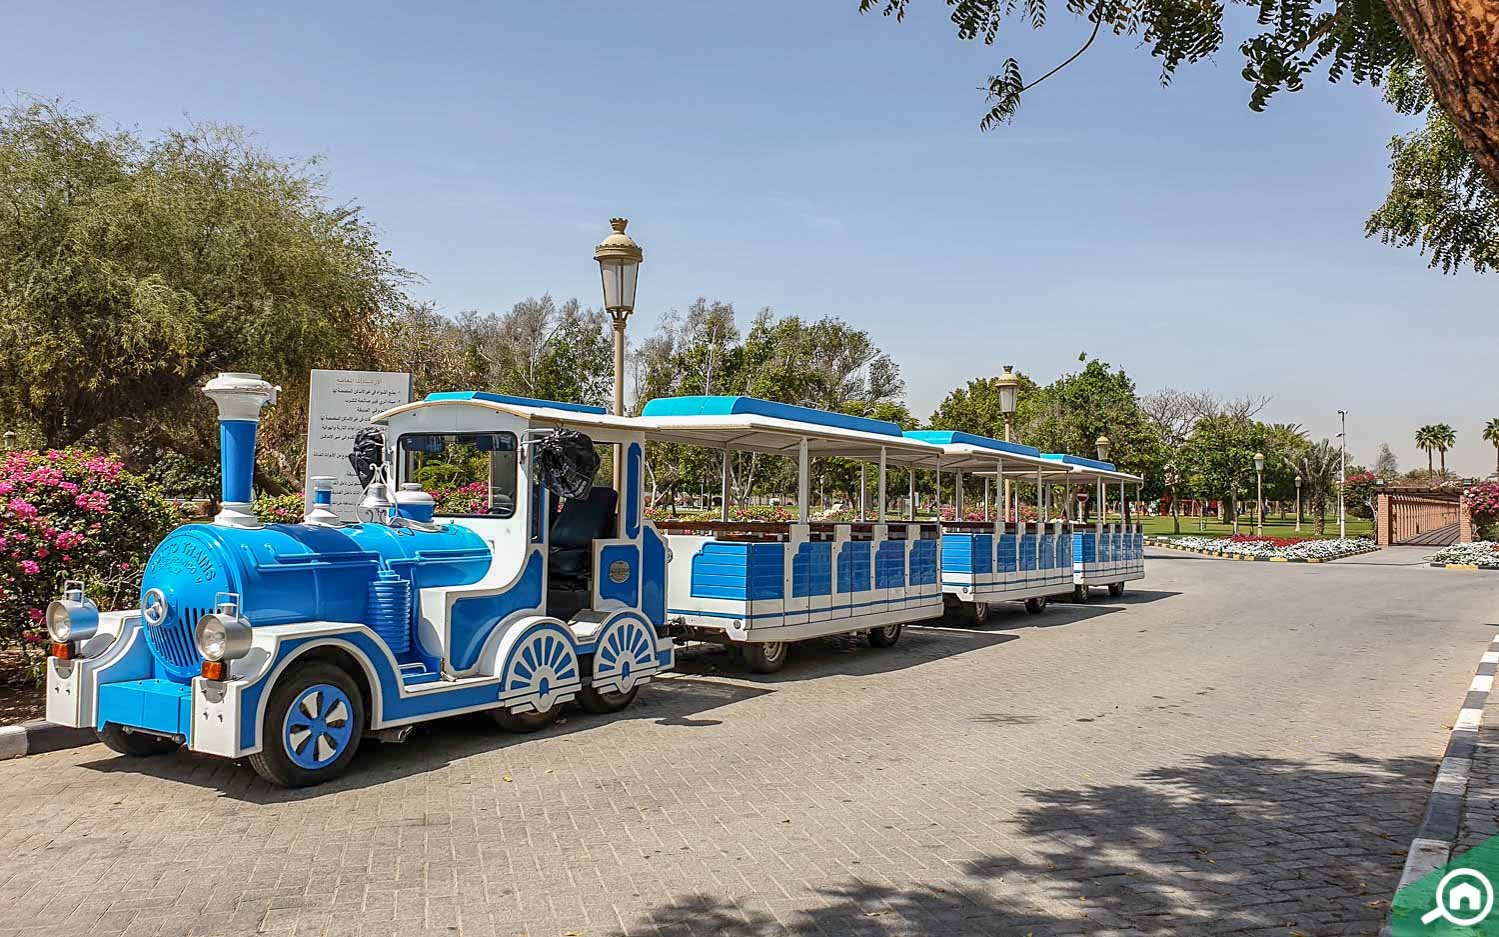 A train at a park in Sharjah